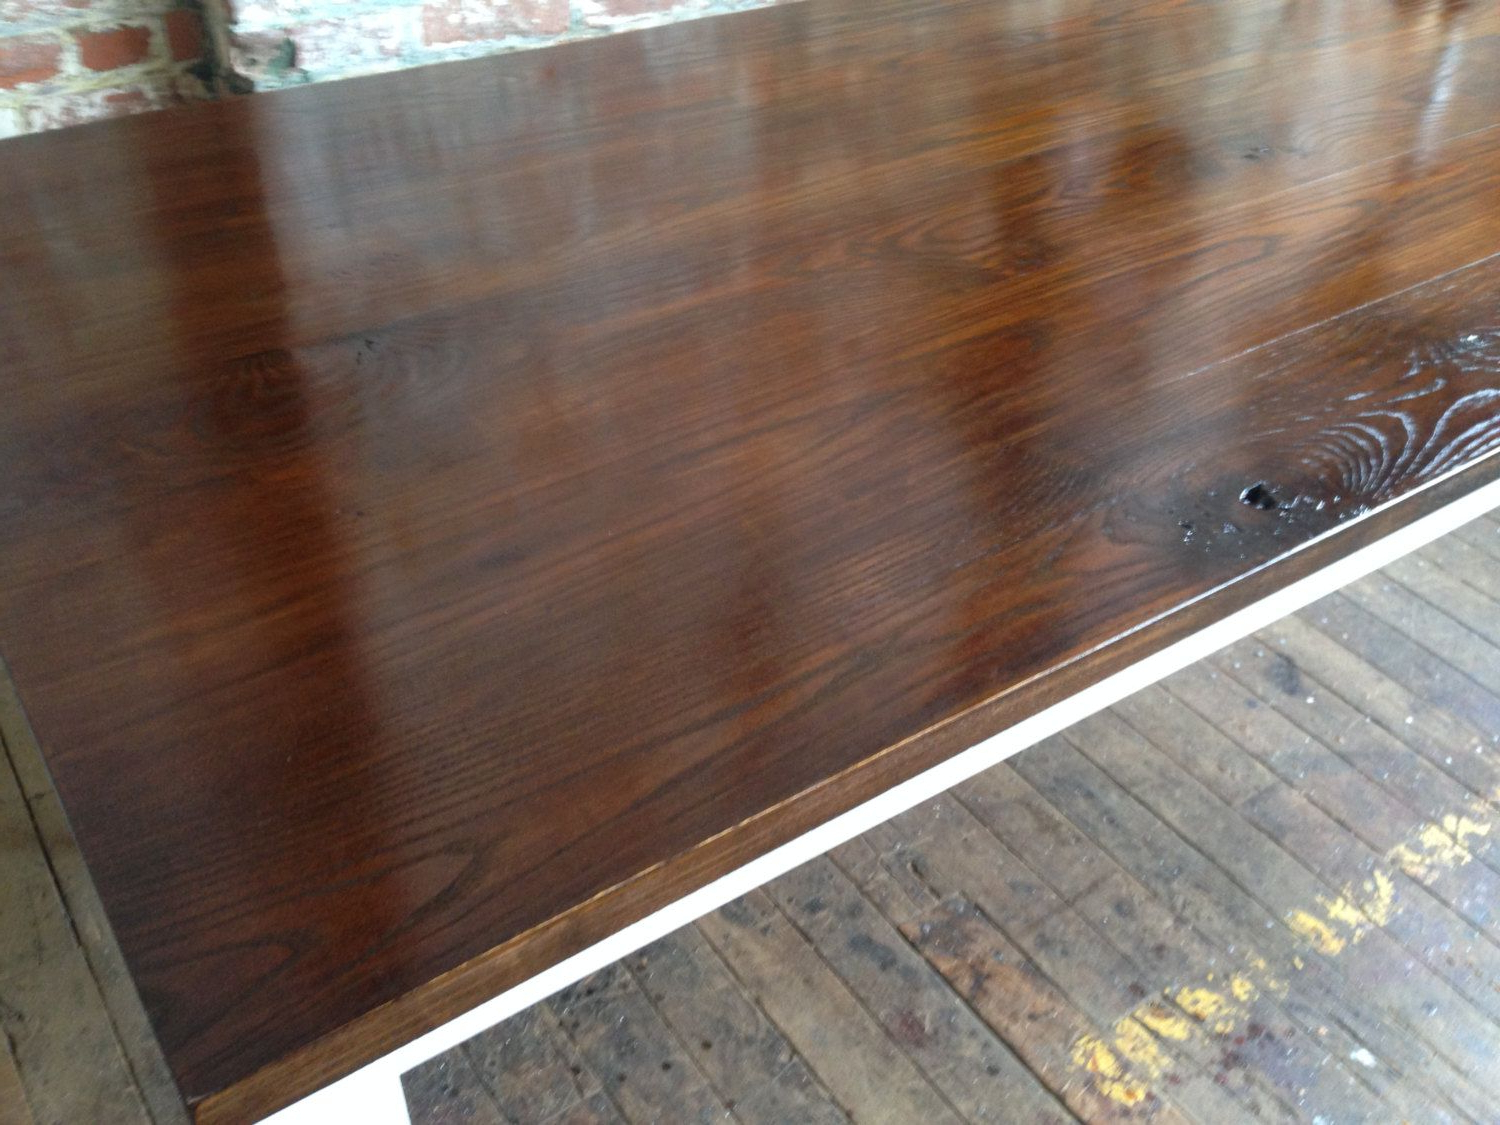 Well Known French Country Dining Table Walnut Stained Ash & White Oak Within Dining Tables With Stained Ash Walnut (Gallery 1 of 30)